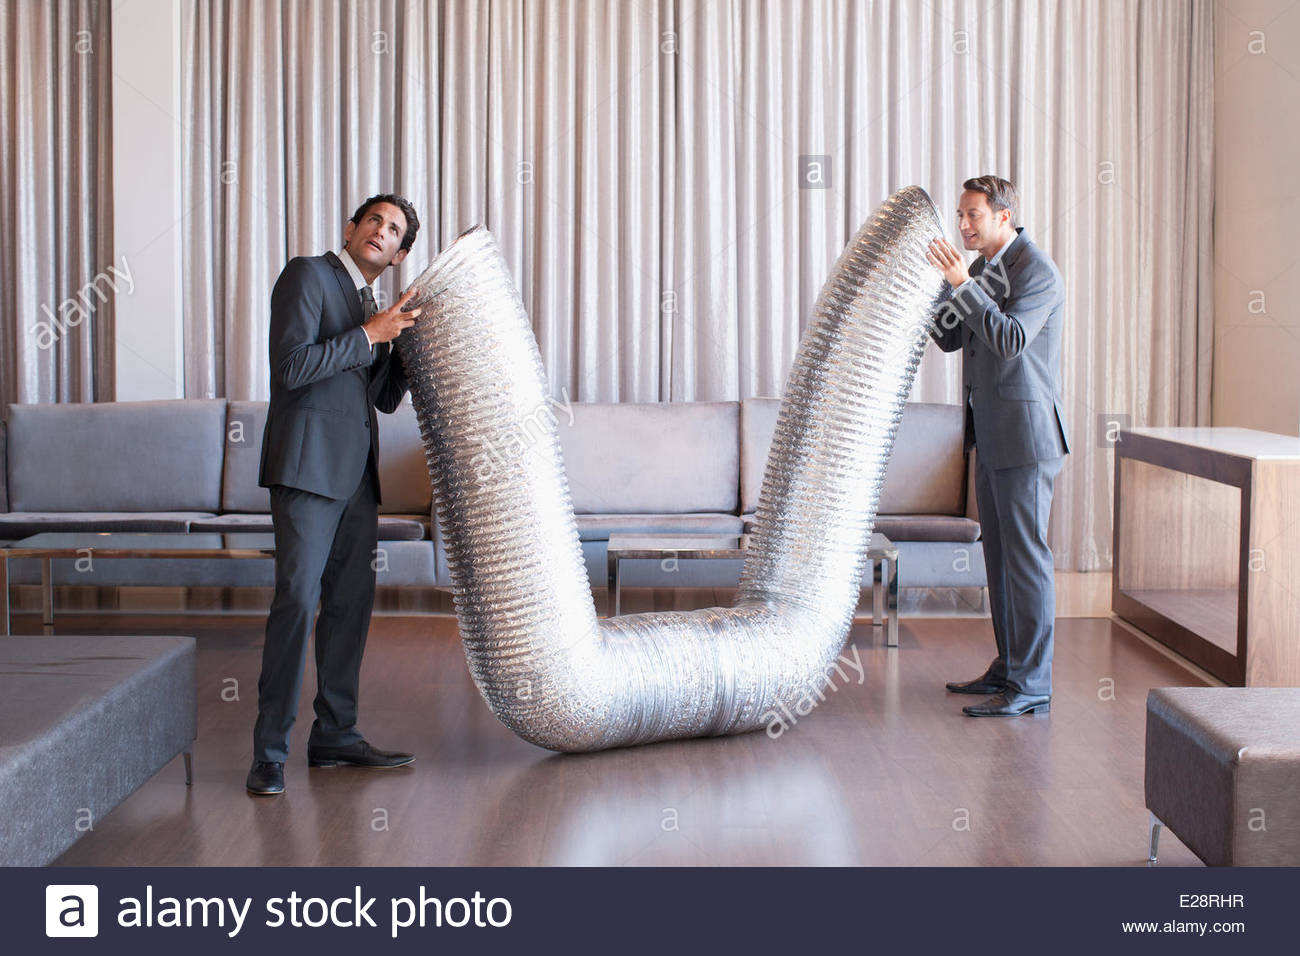 Business people holding metal tubing in hotel lobby - Stock Image